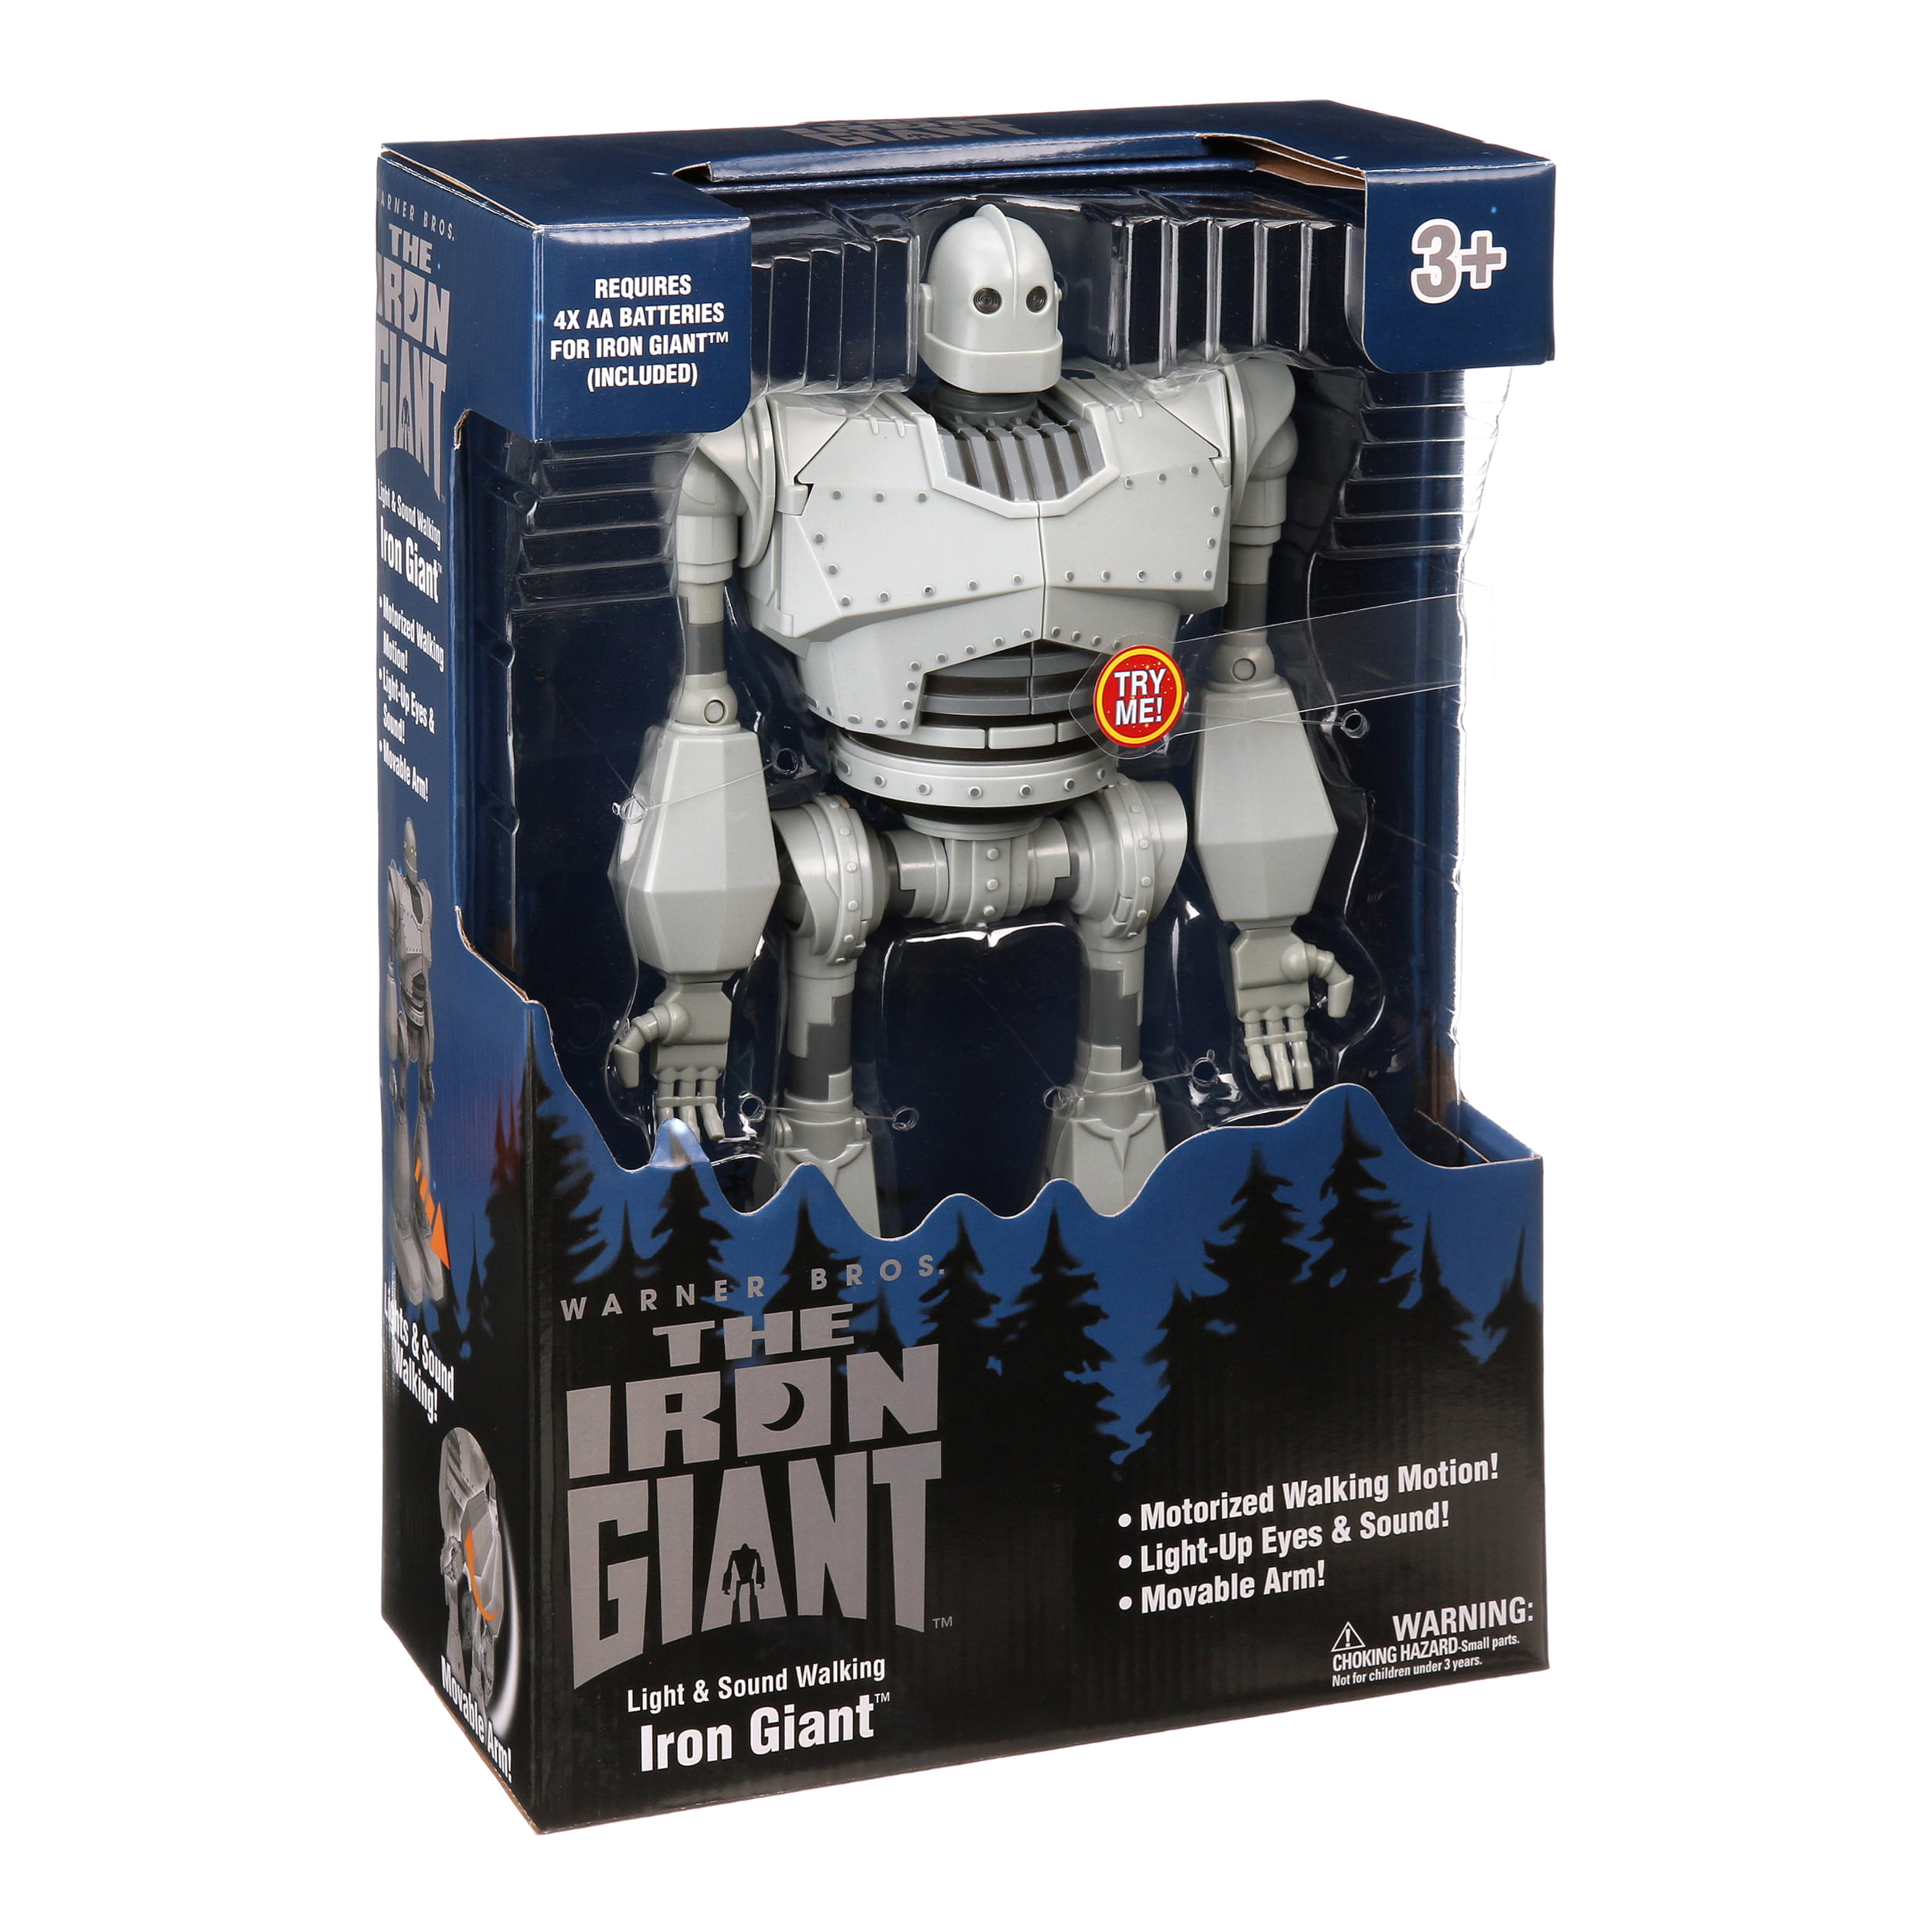 The Iron Giant Light & Sound Walking Robot Toy, 15""